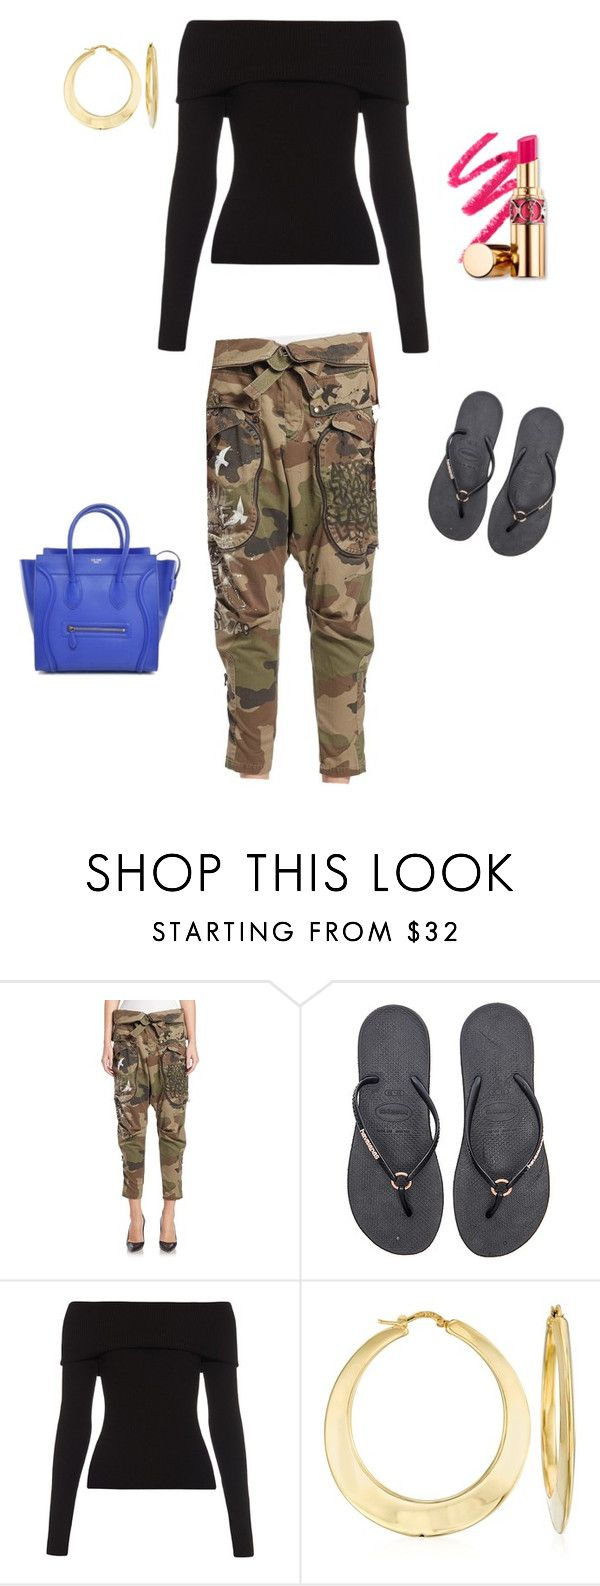 """Cady Heron"" by yunah1220 ❤ liked on Polyvore featuring Faith Connexion, Havaianas, A.L.C., Ross-Simons, women's clothing, women, female, woman, misses and juniors"